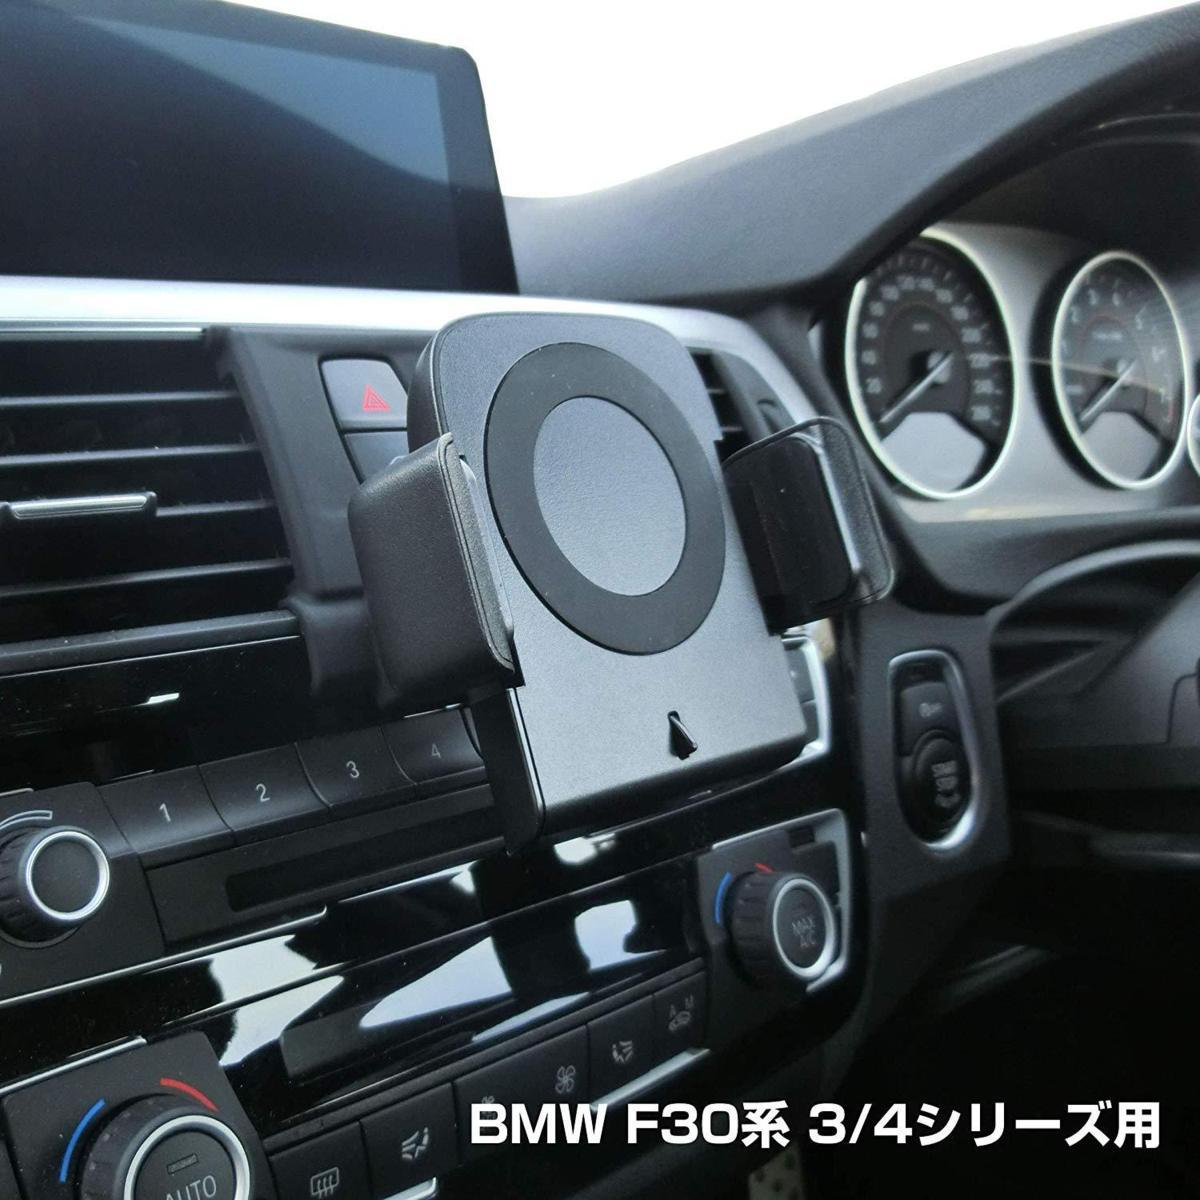 BMW F30・G30系/ワイヤレス充電機 OneAction-Charger 【BREX】